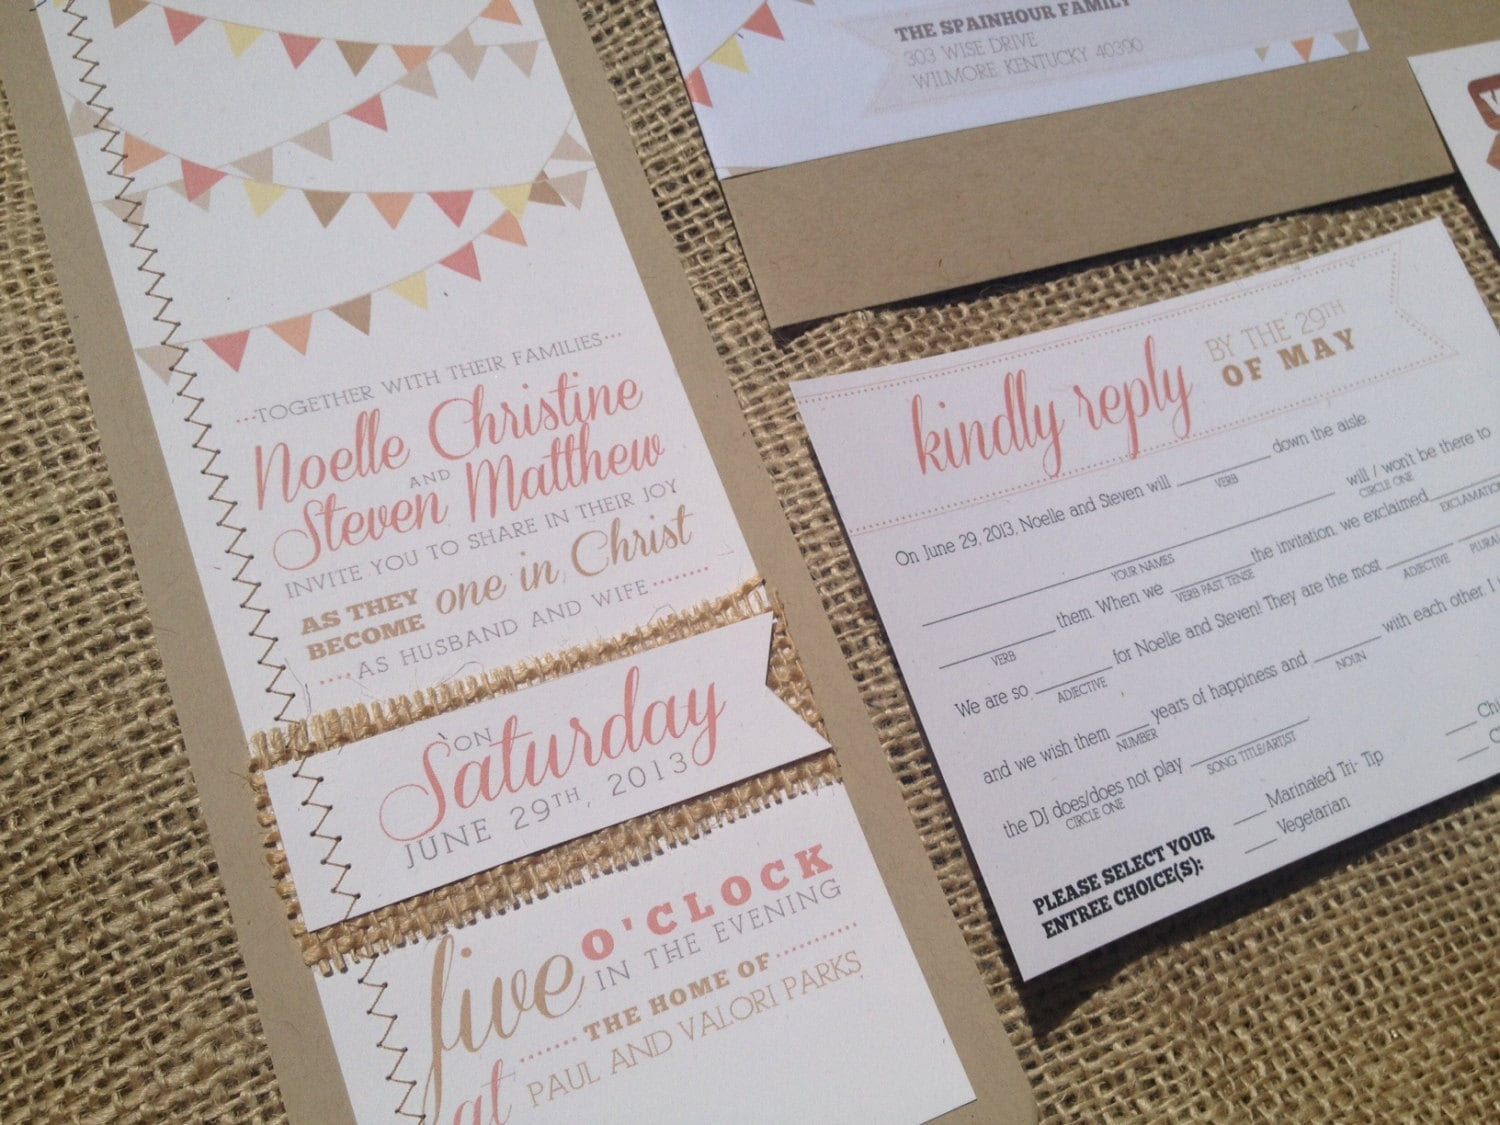 Bunting Wedding Invite: Bunting Calligraphy Wedding Invitation MadLibs By Mailepaperie